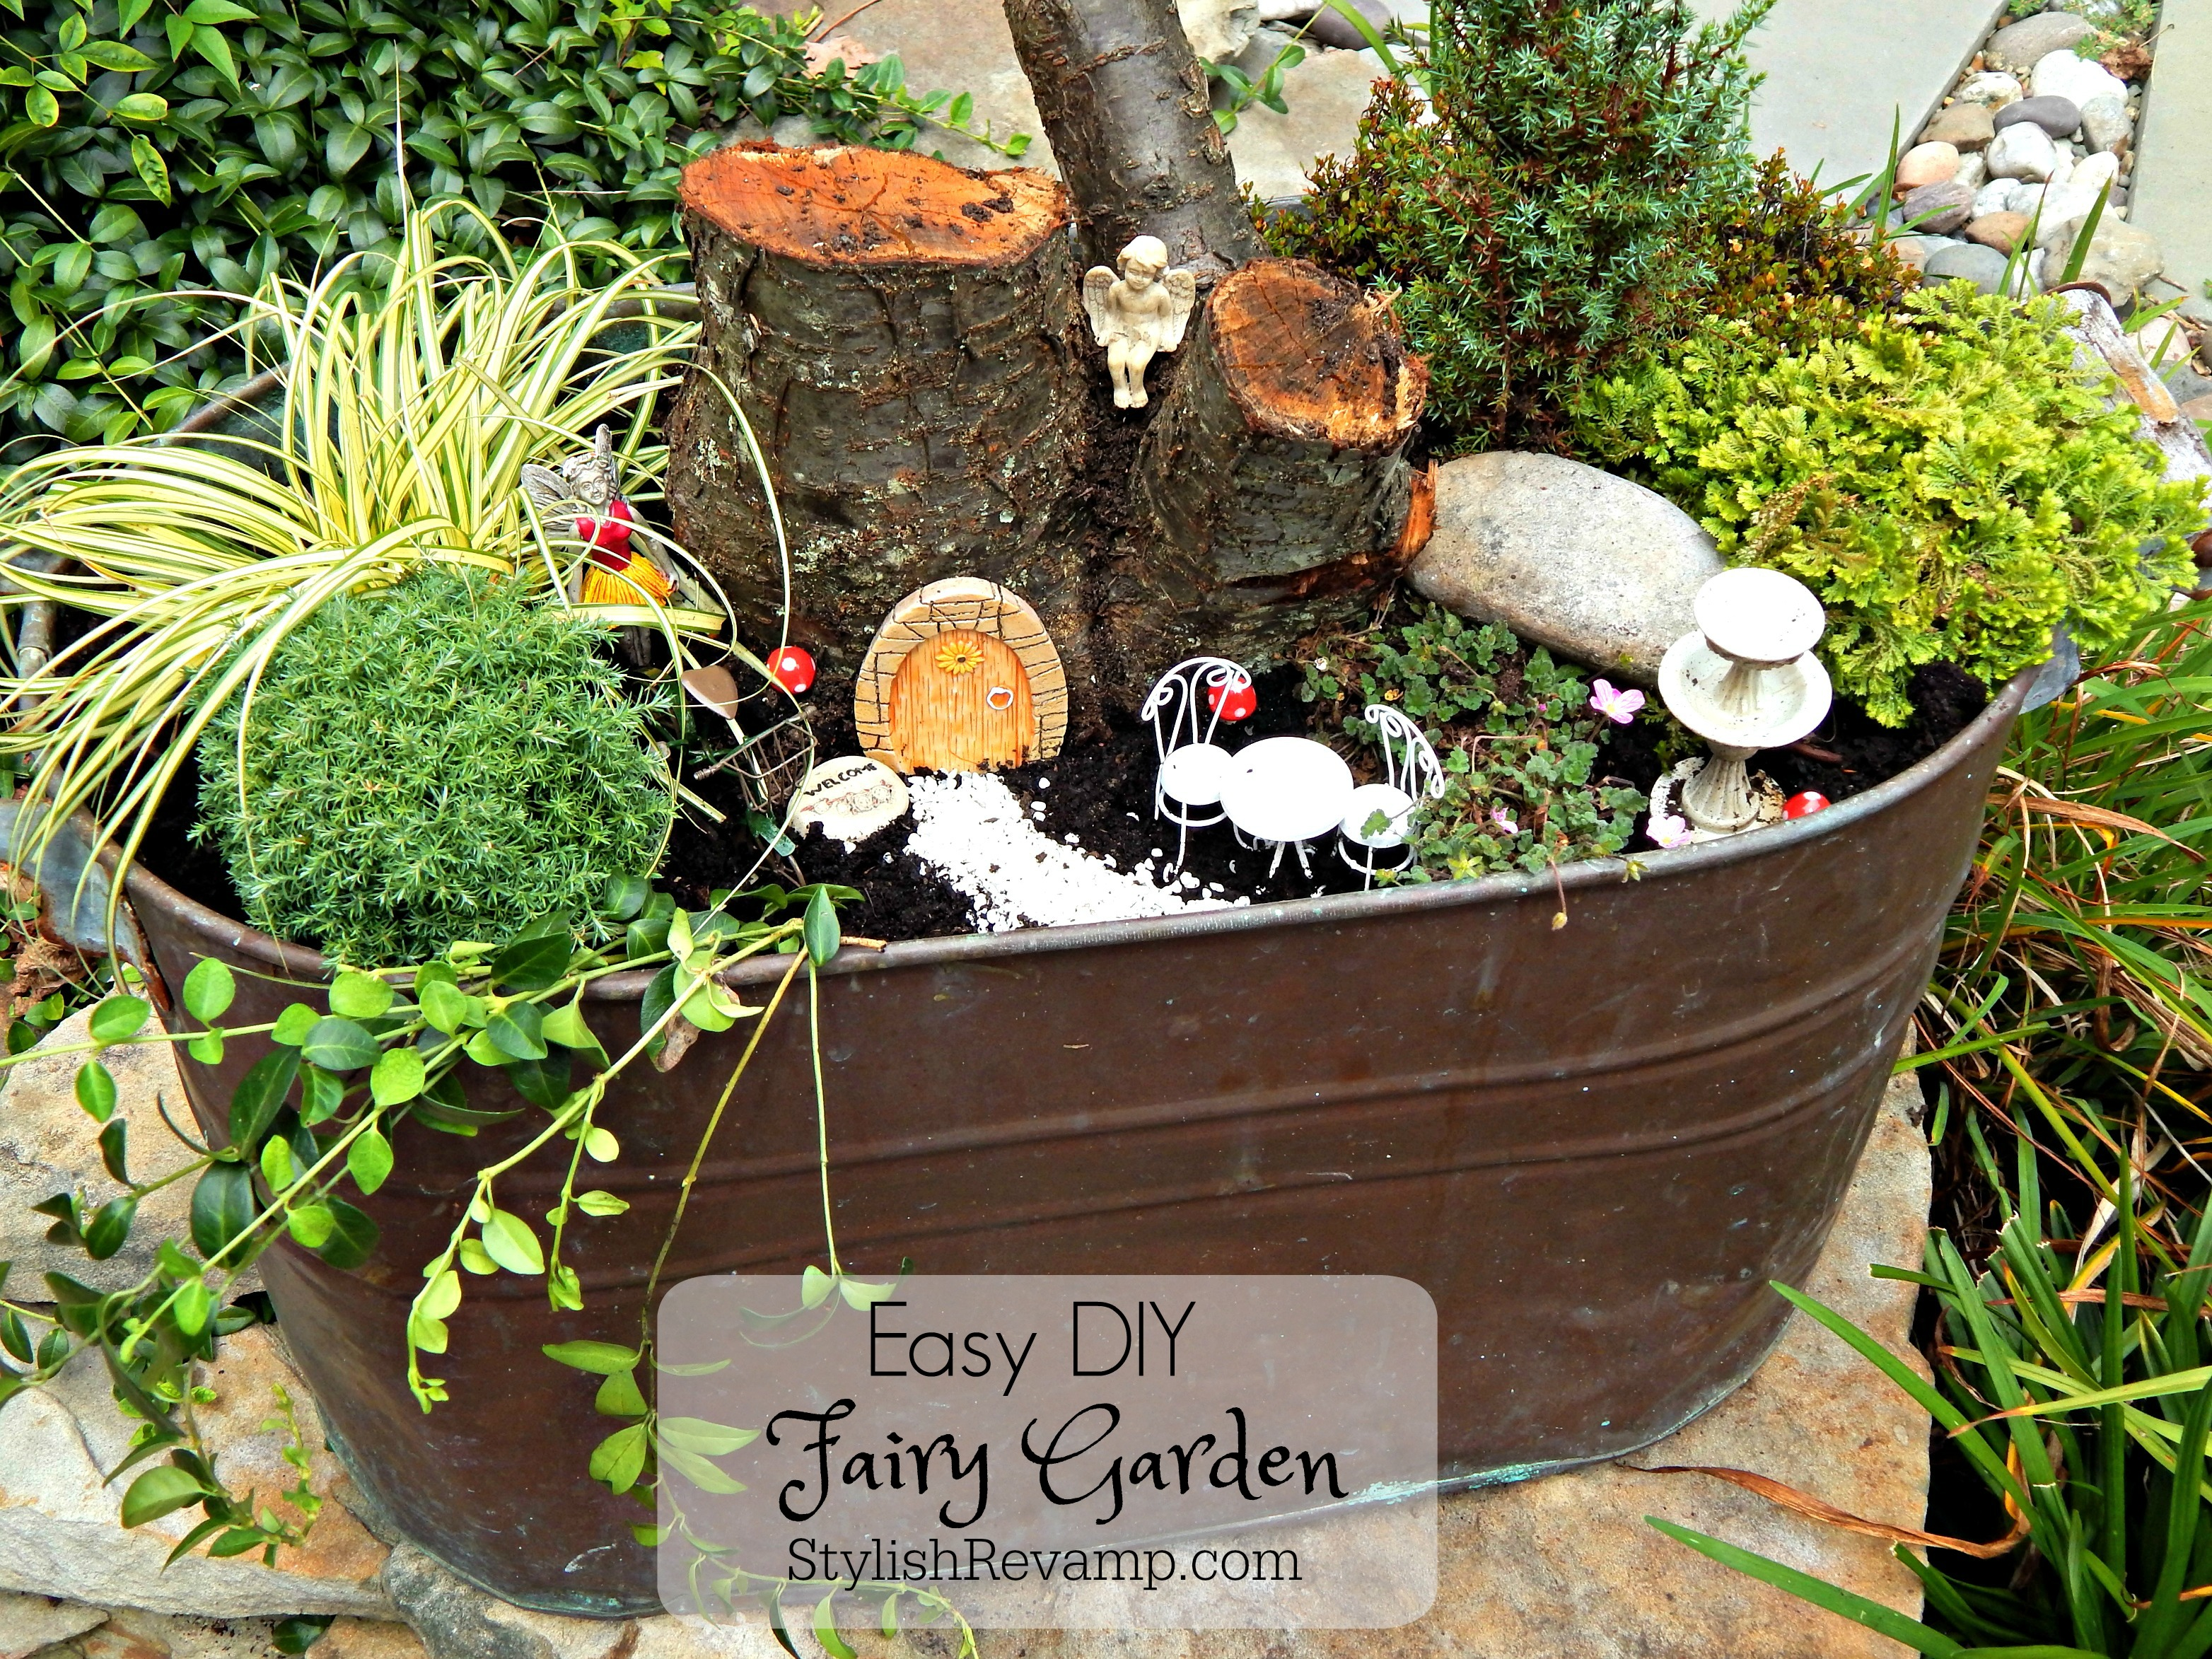 Encouraging Today We Are Sharing How To Make A Fairy Garden Using A Copper A Easy Diy Fairy Garden Revamp Diy Fairy Garden Pot Diy Fairy Garden House garden Diy Fairy Garden